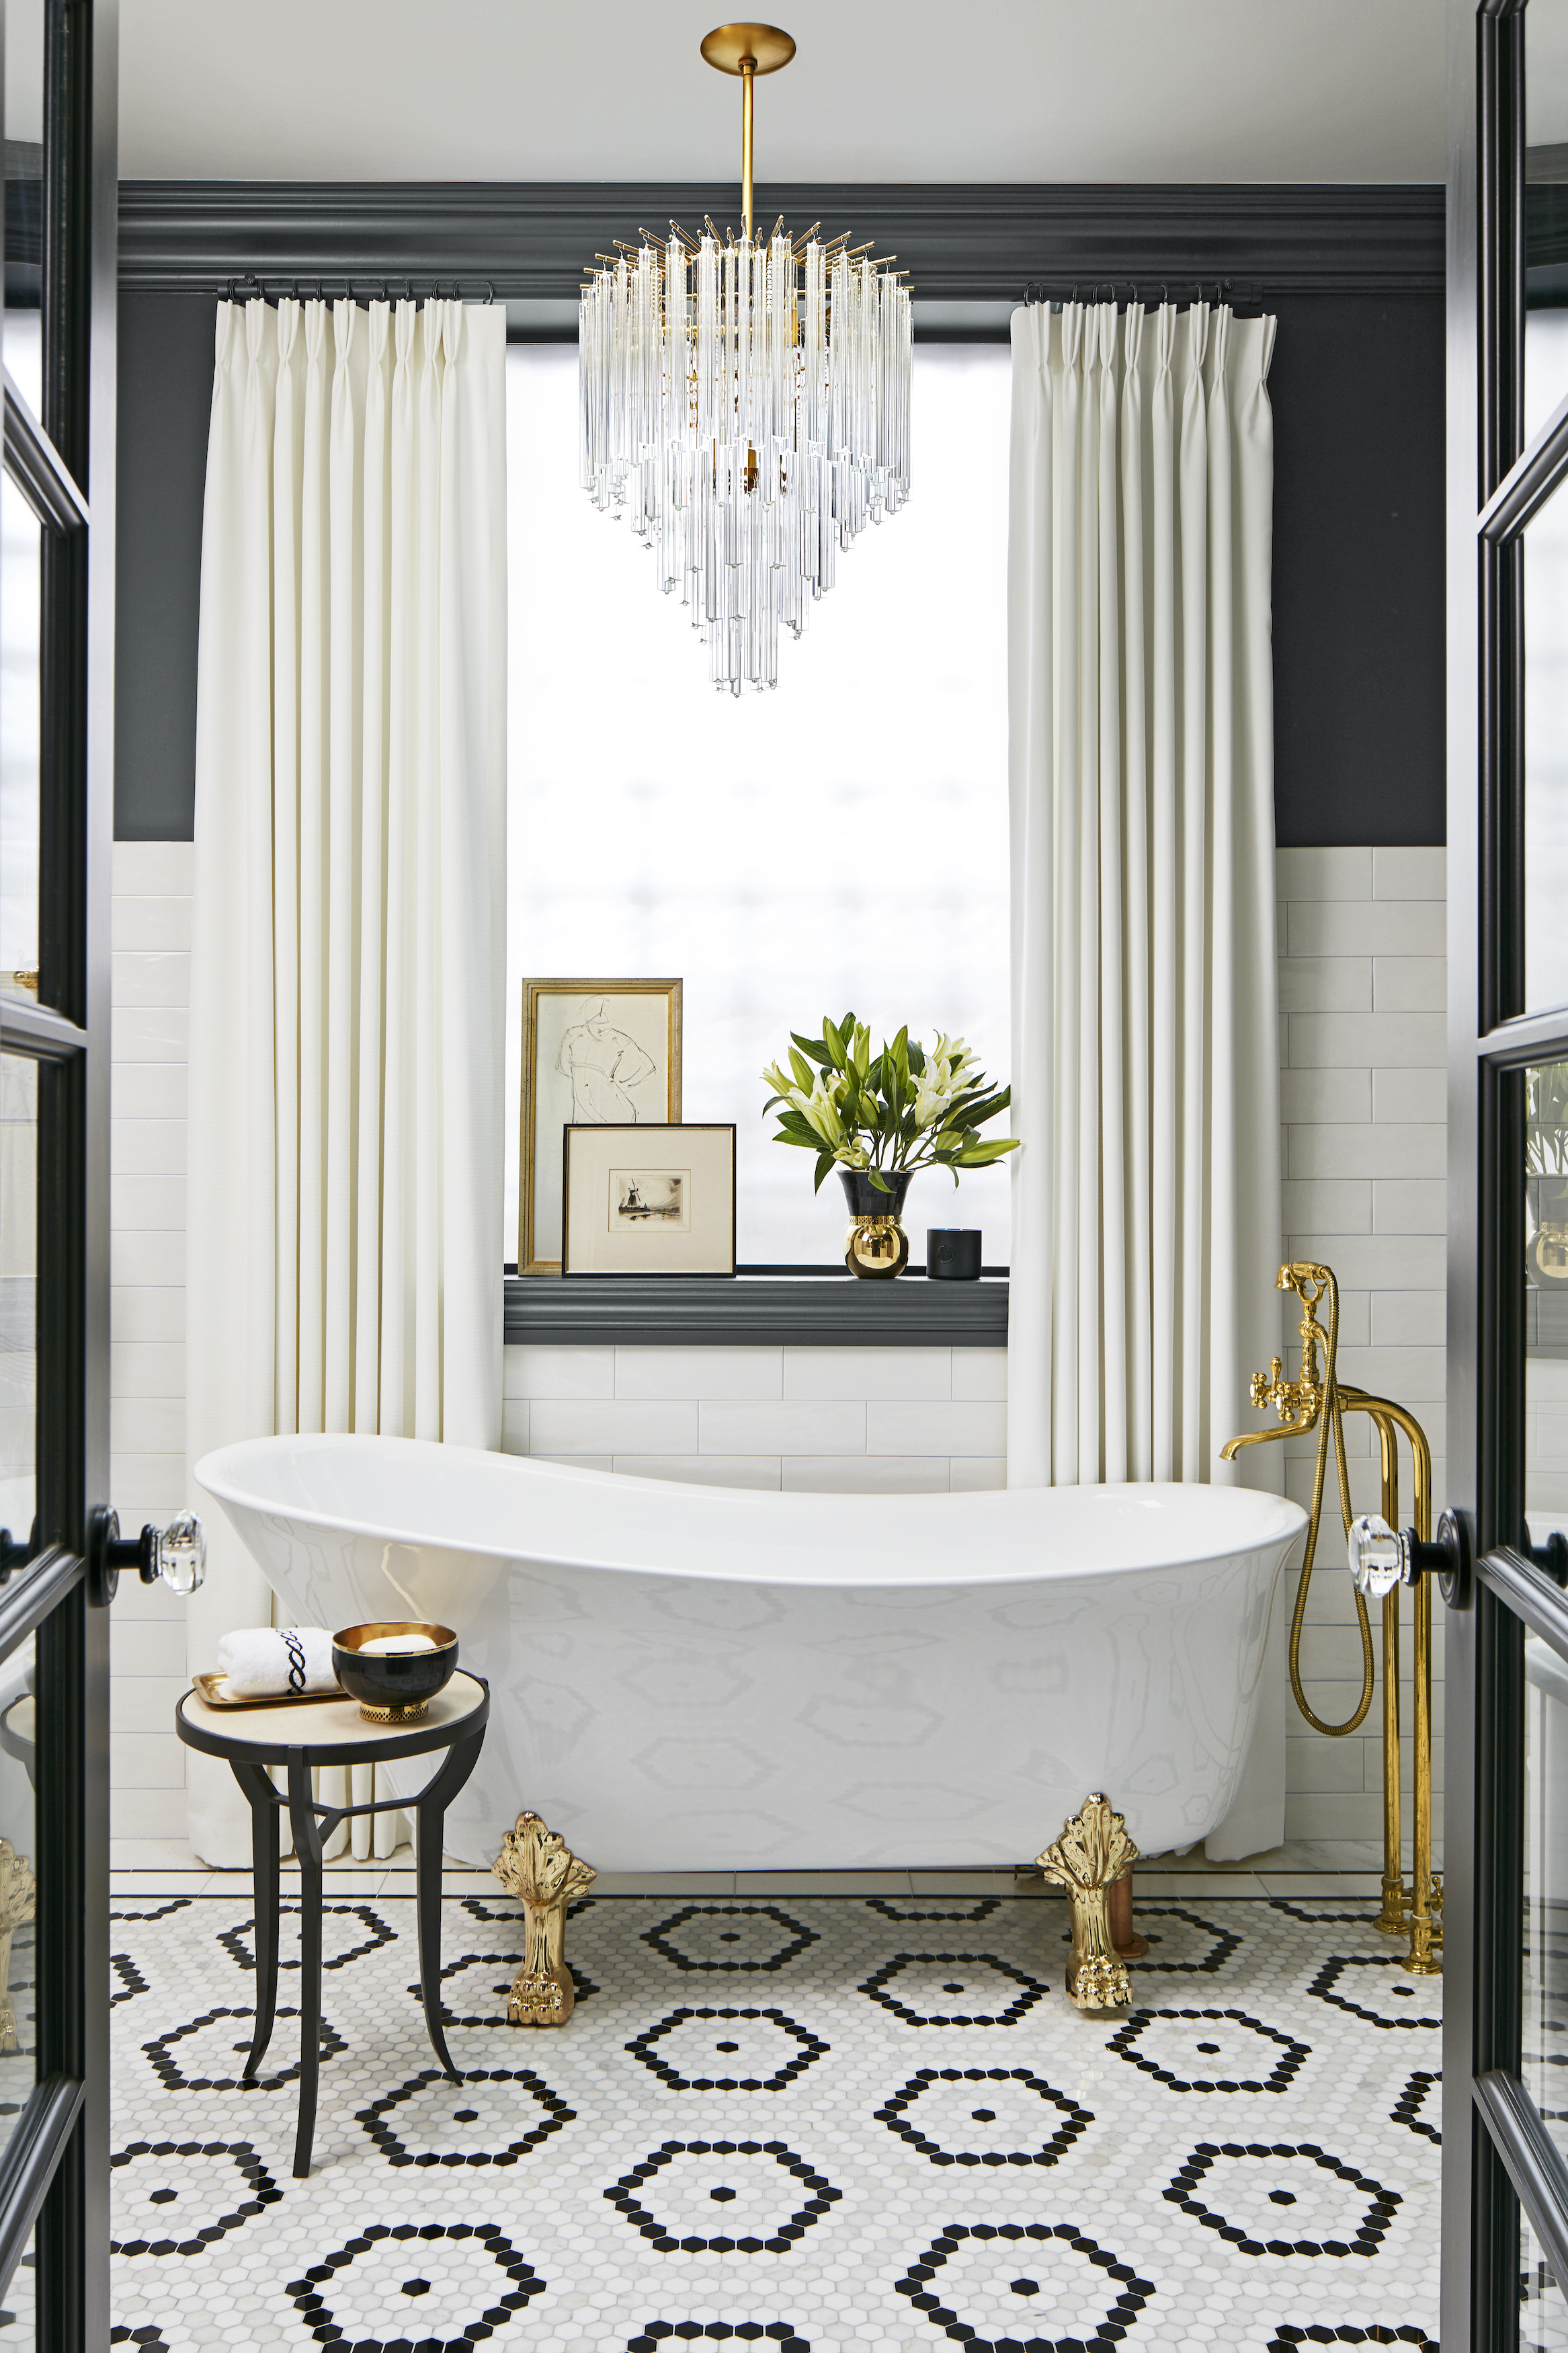 12 Best Bathroom Paint Colors - Popular Ideas for Bathroom ...